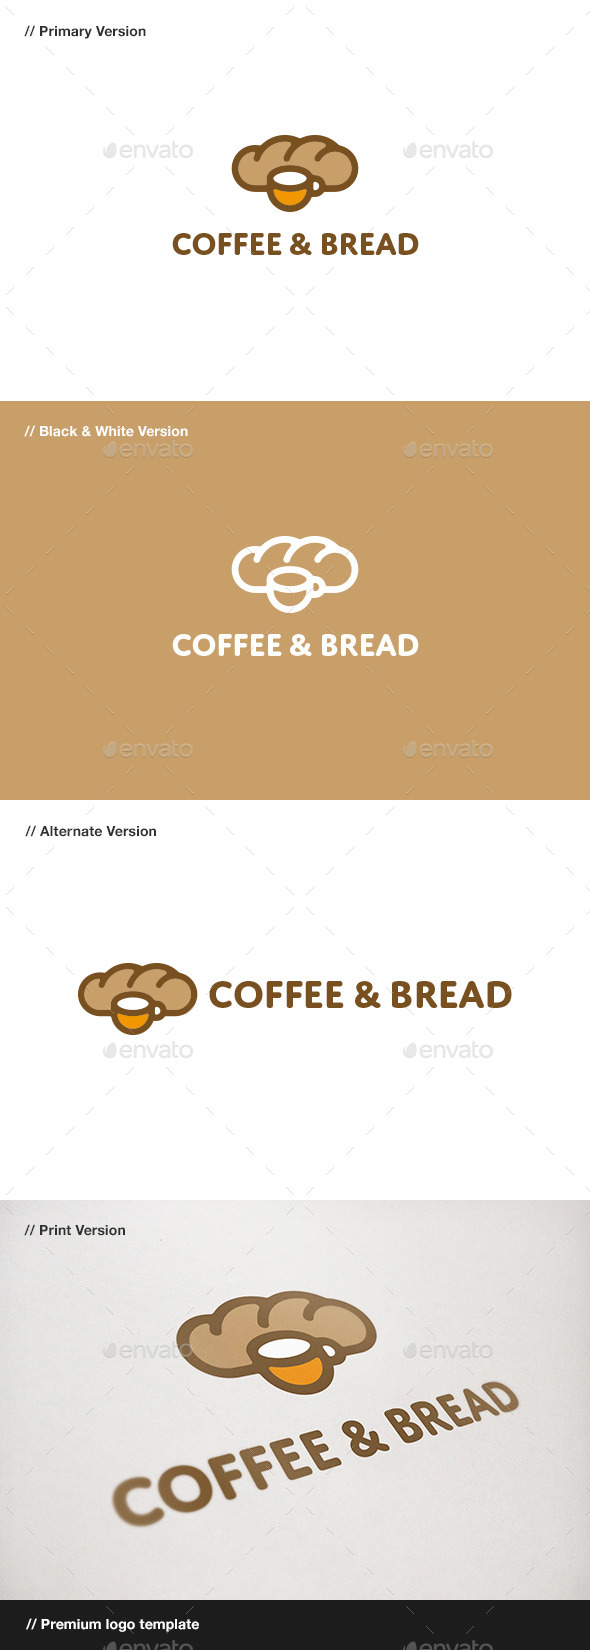 GraphicRiver Coffee & Bread Logo 11025053